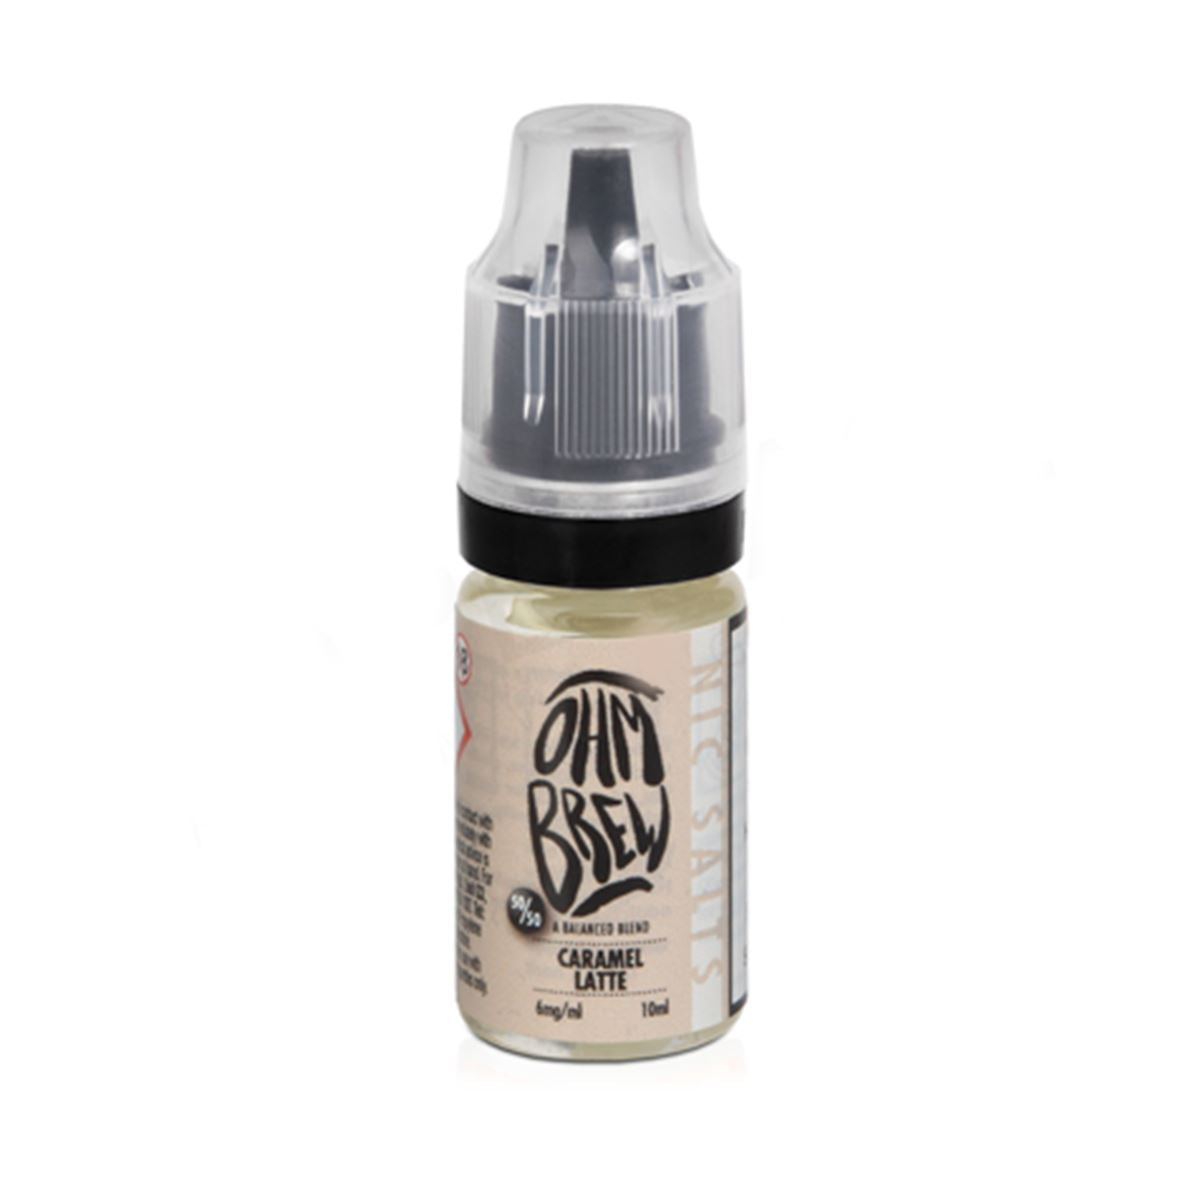 Caramel Latte 10ml Eliquid By Ohm Brew